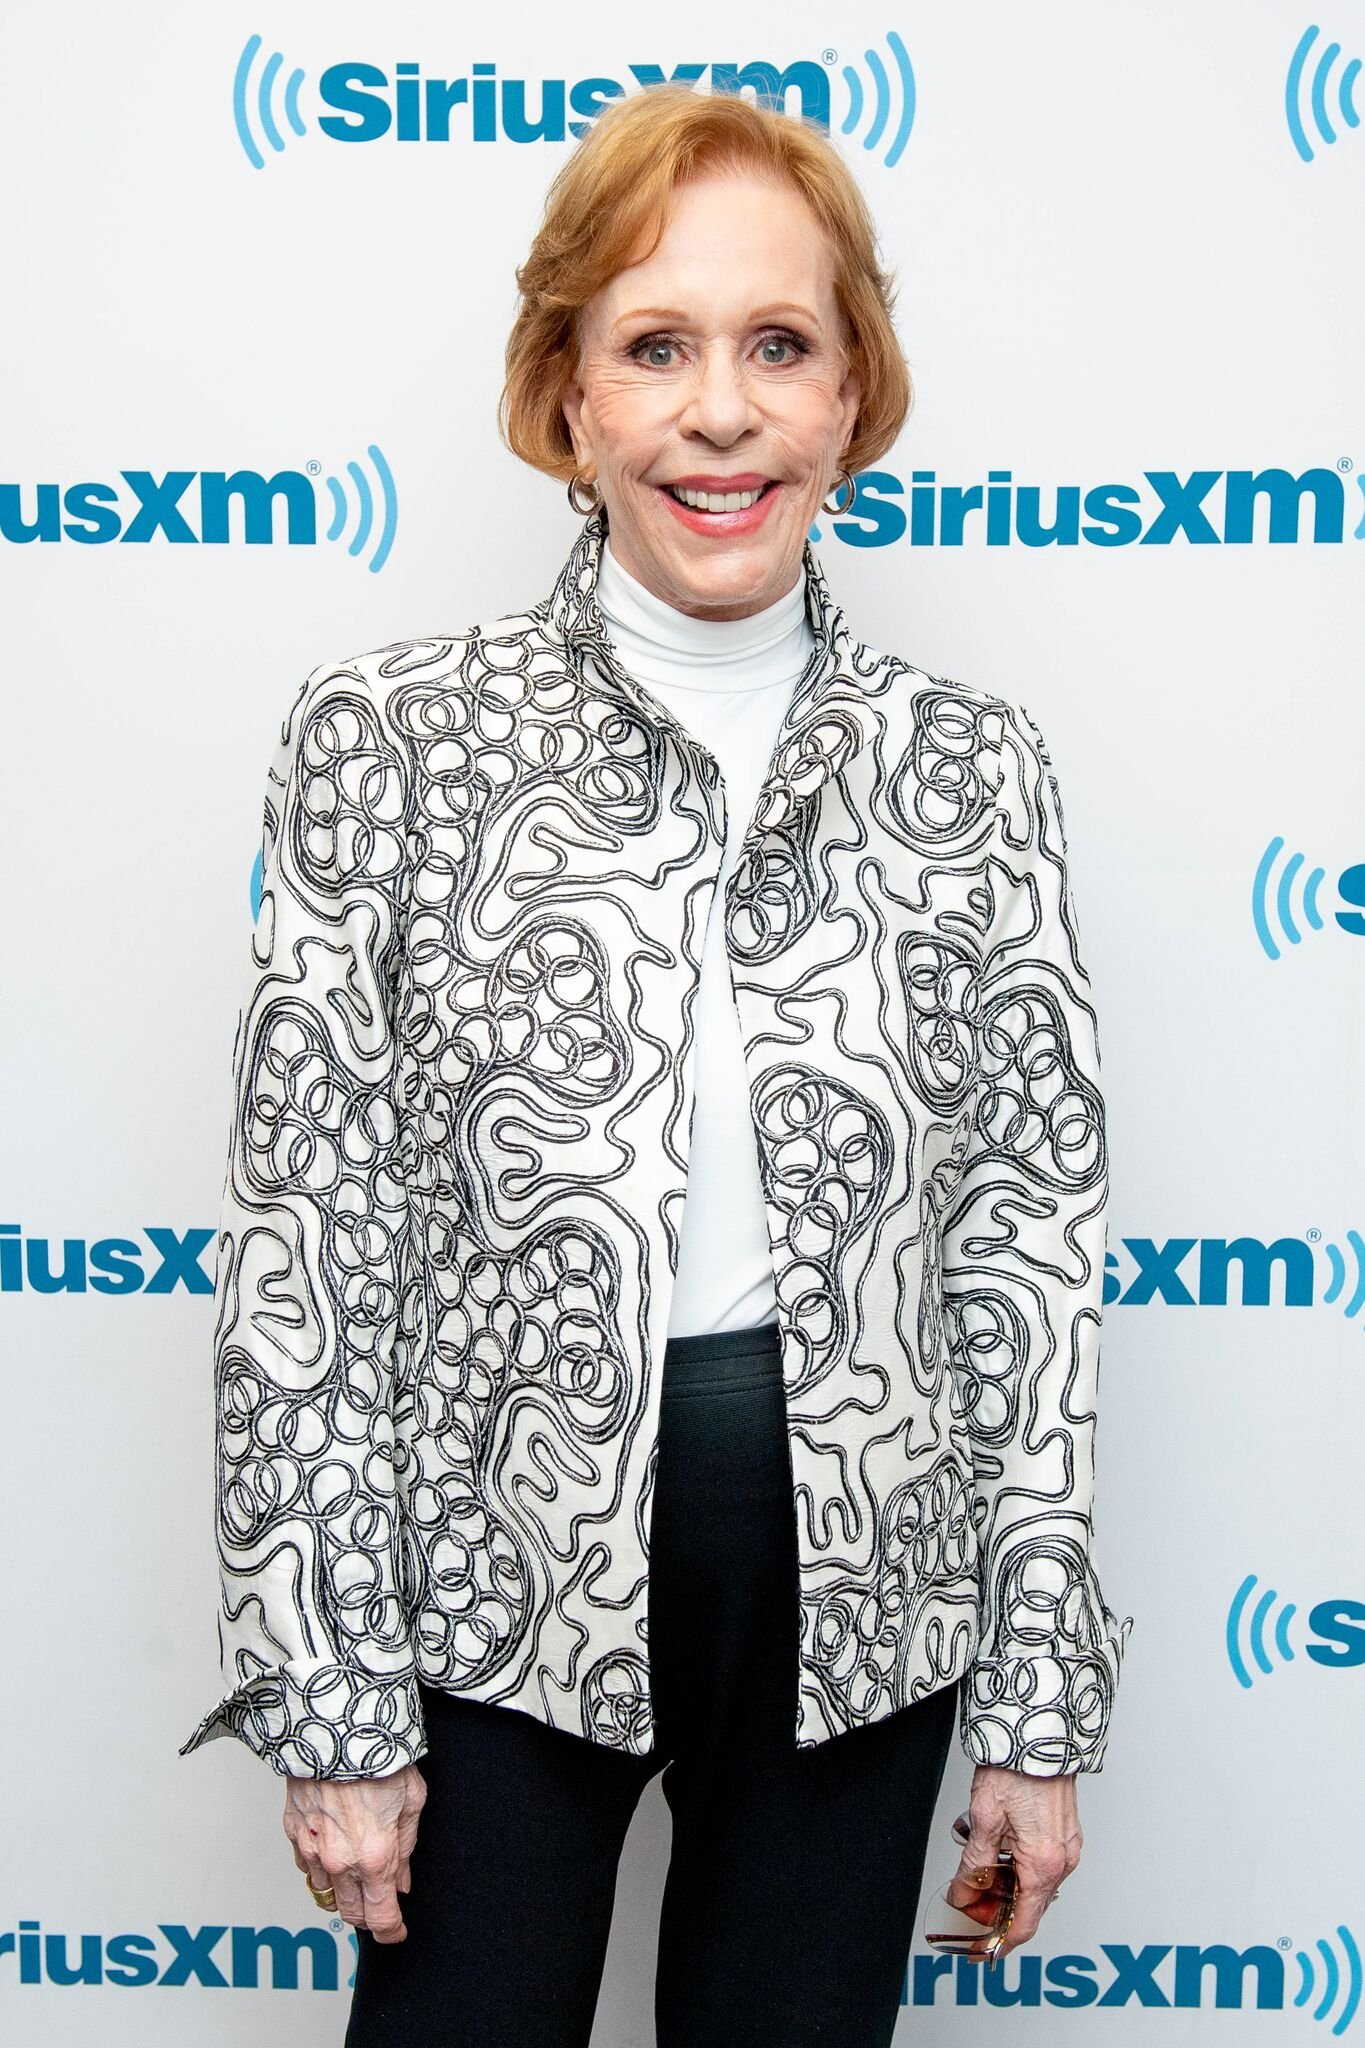 Carol Burnett at SiriusXM Studios on May 3, 2018 in New York City | Photo: Getty Images